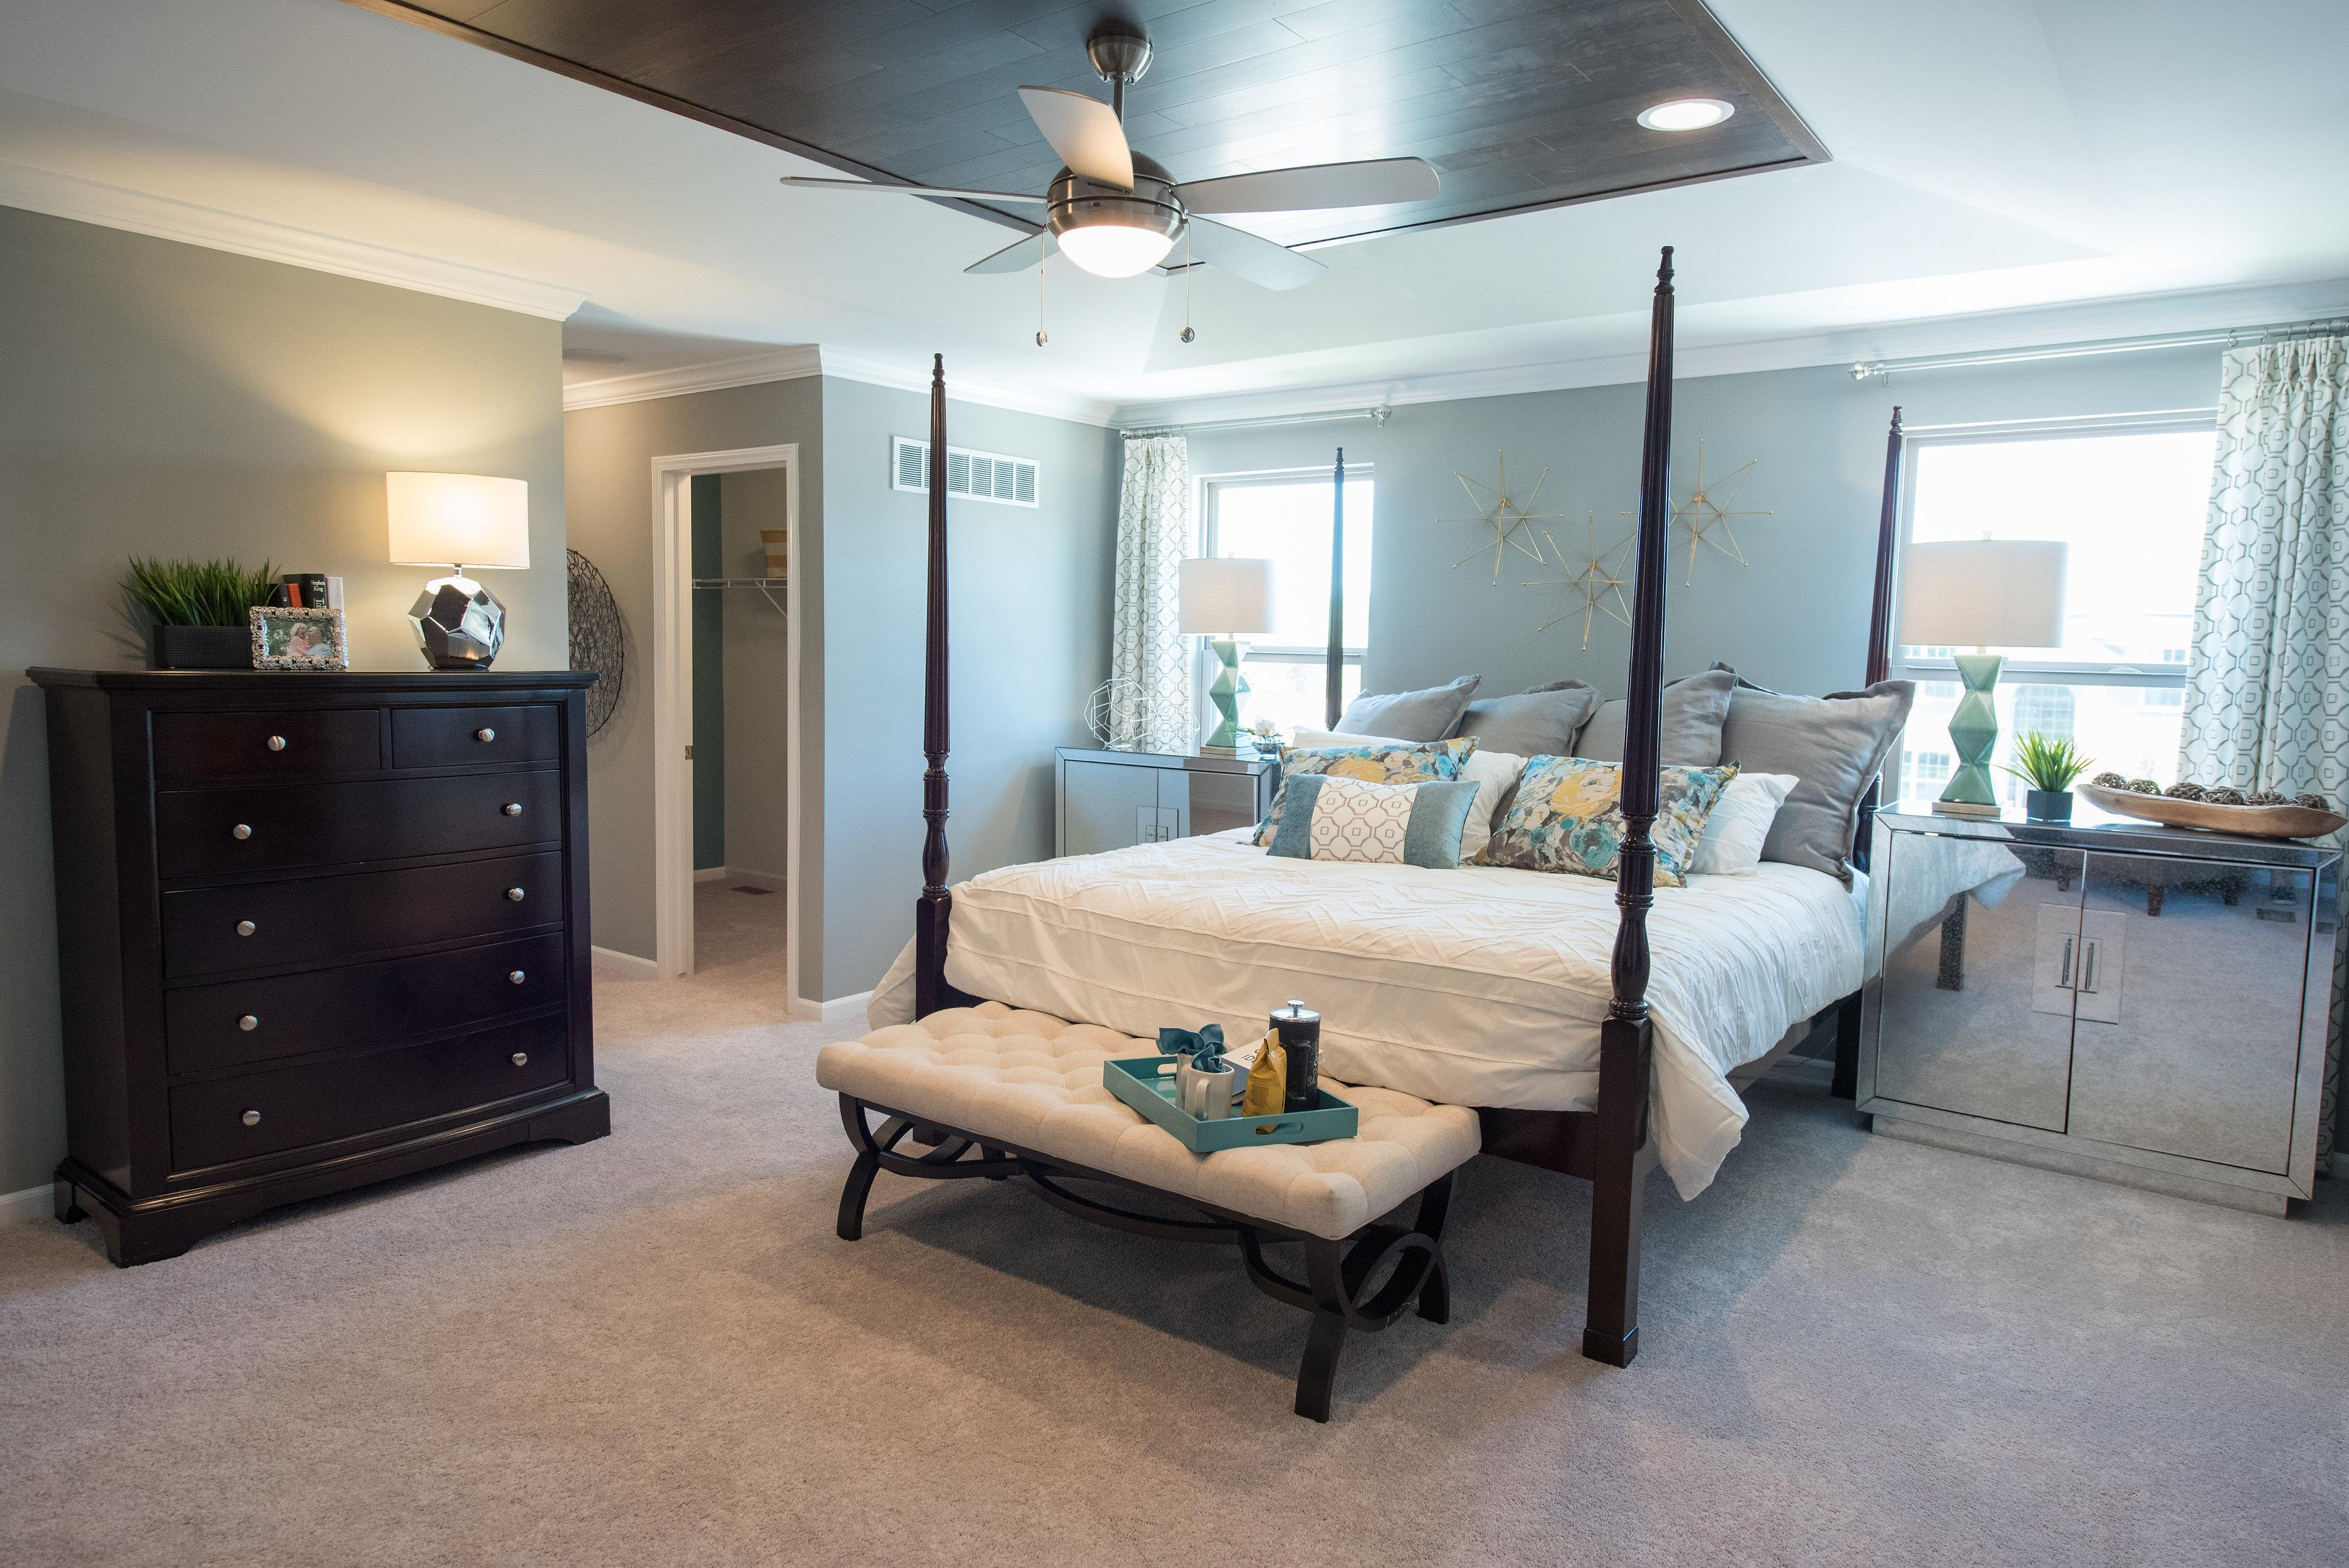 Bedroom featured in the Remington By Singh Homes in Detroit, MI